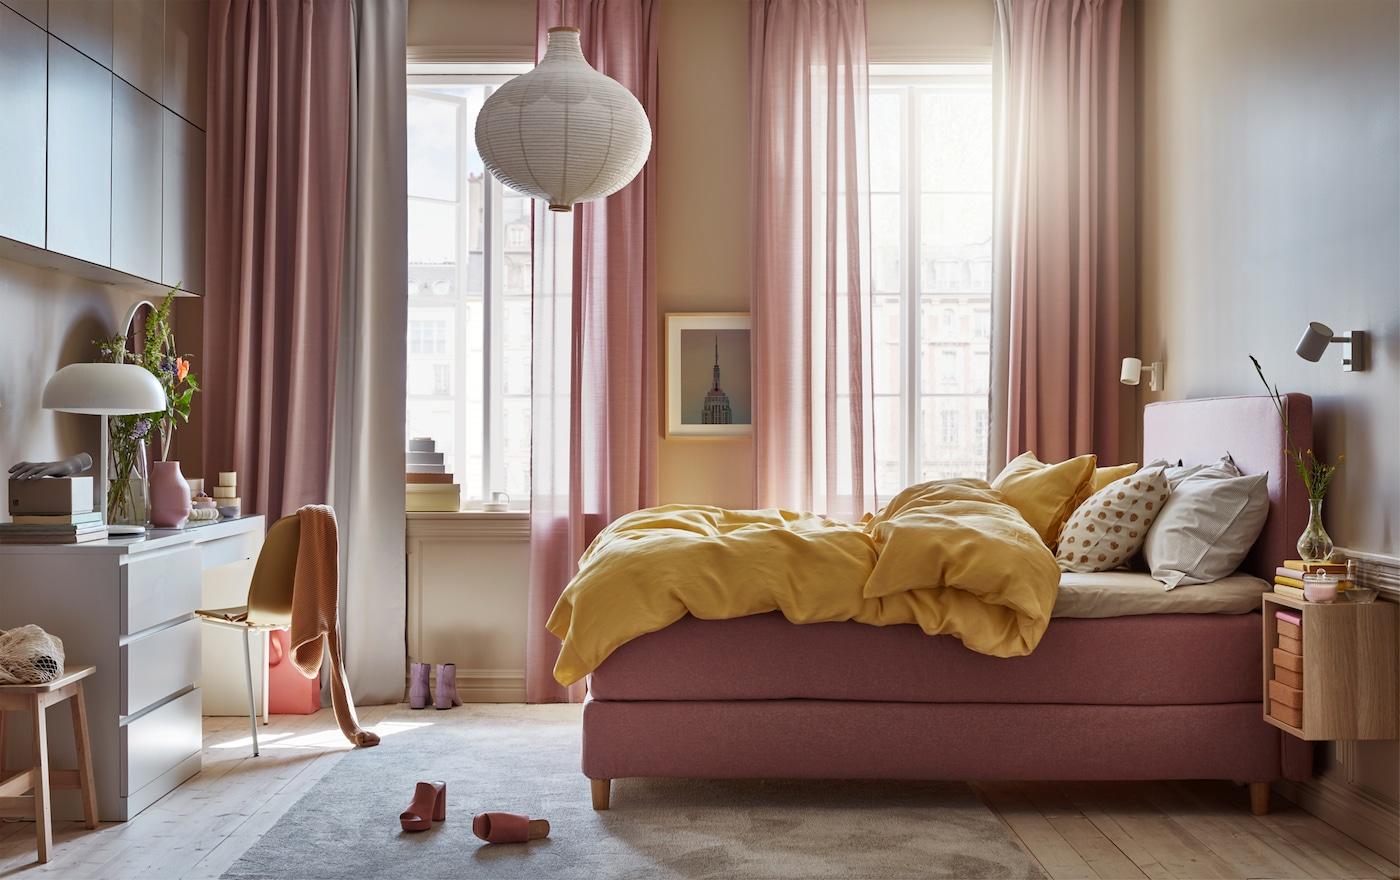 Bedroom Design Gallery UAE - IKEA